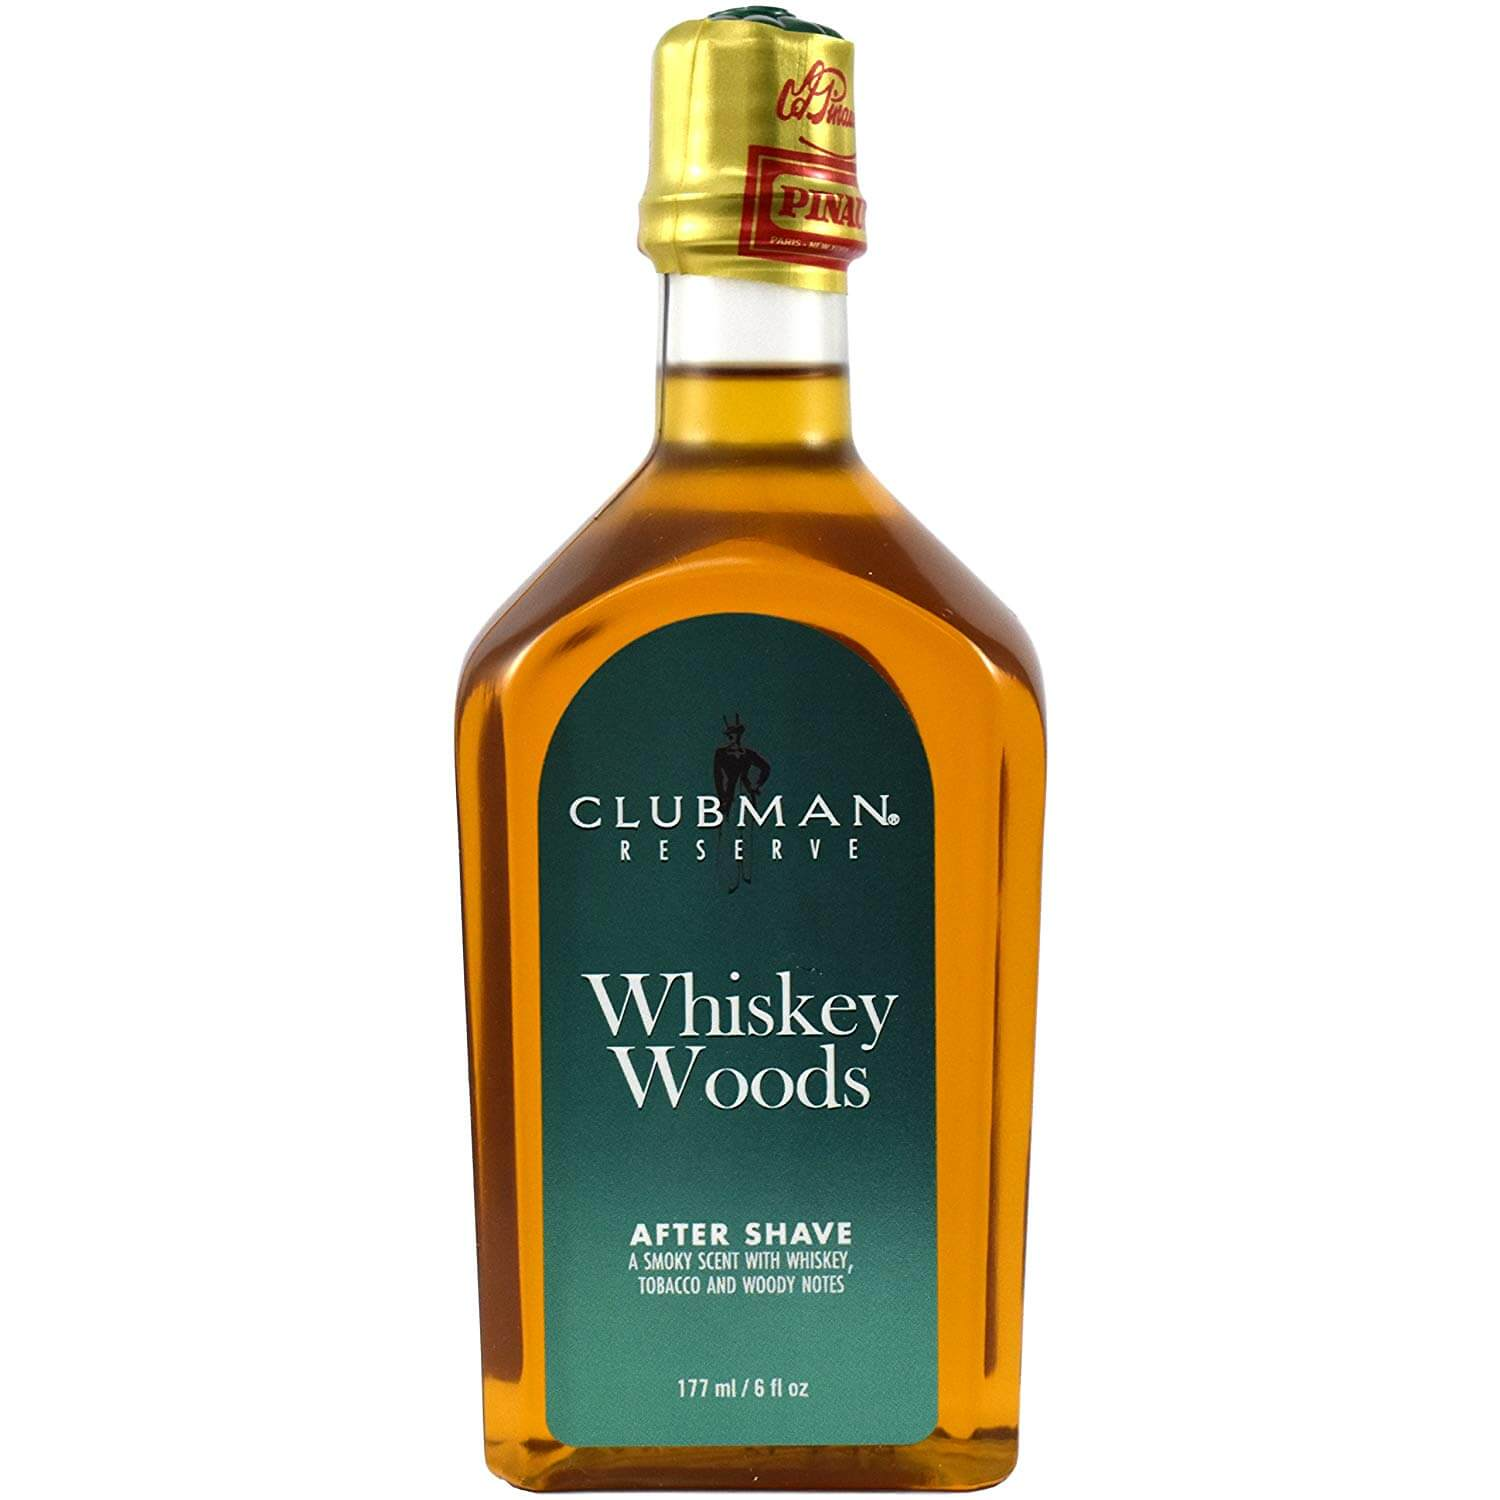 Nước Dưỡng Clubman Reserve - Whiskey Woods After Shave - 177ml